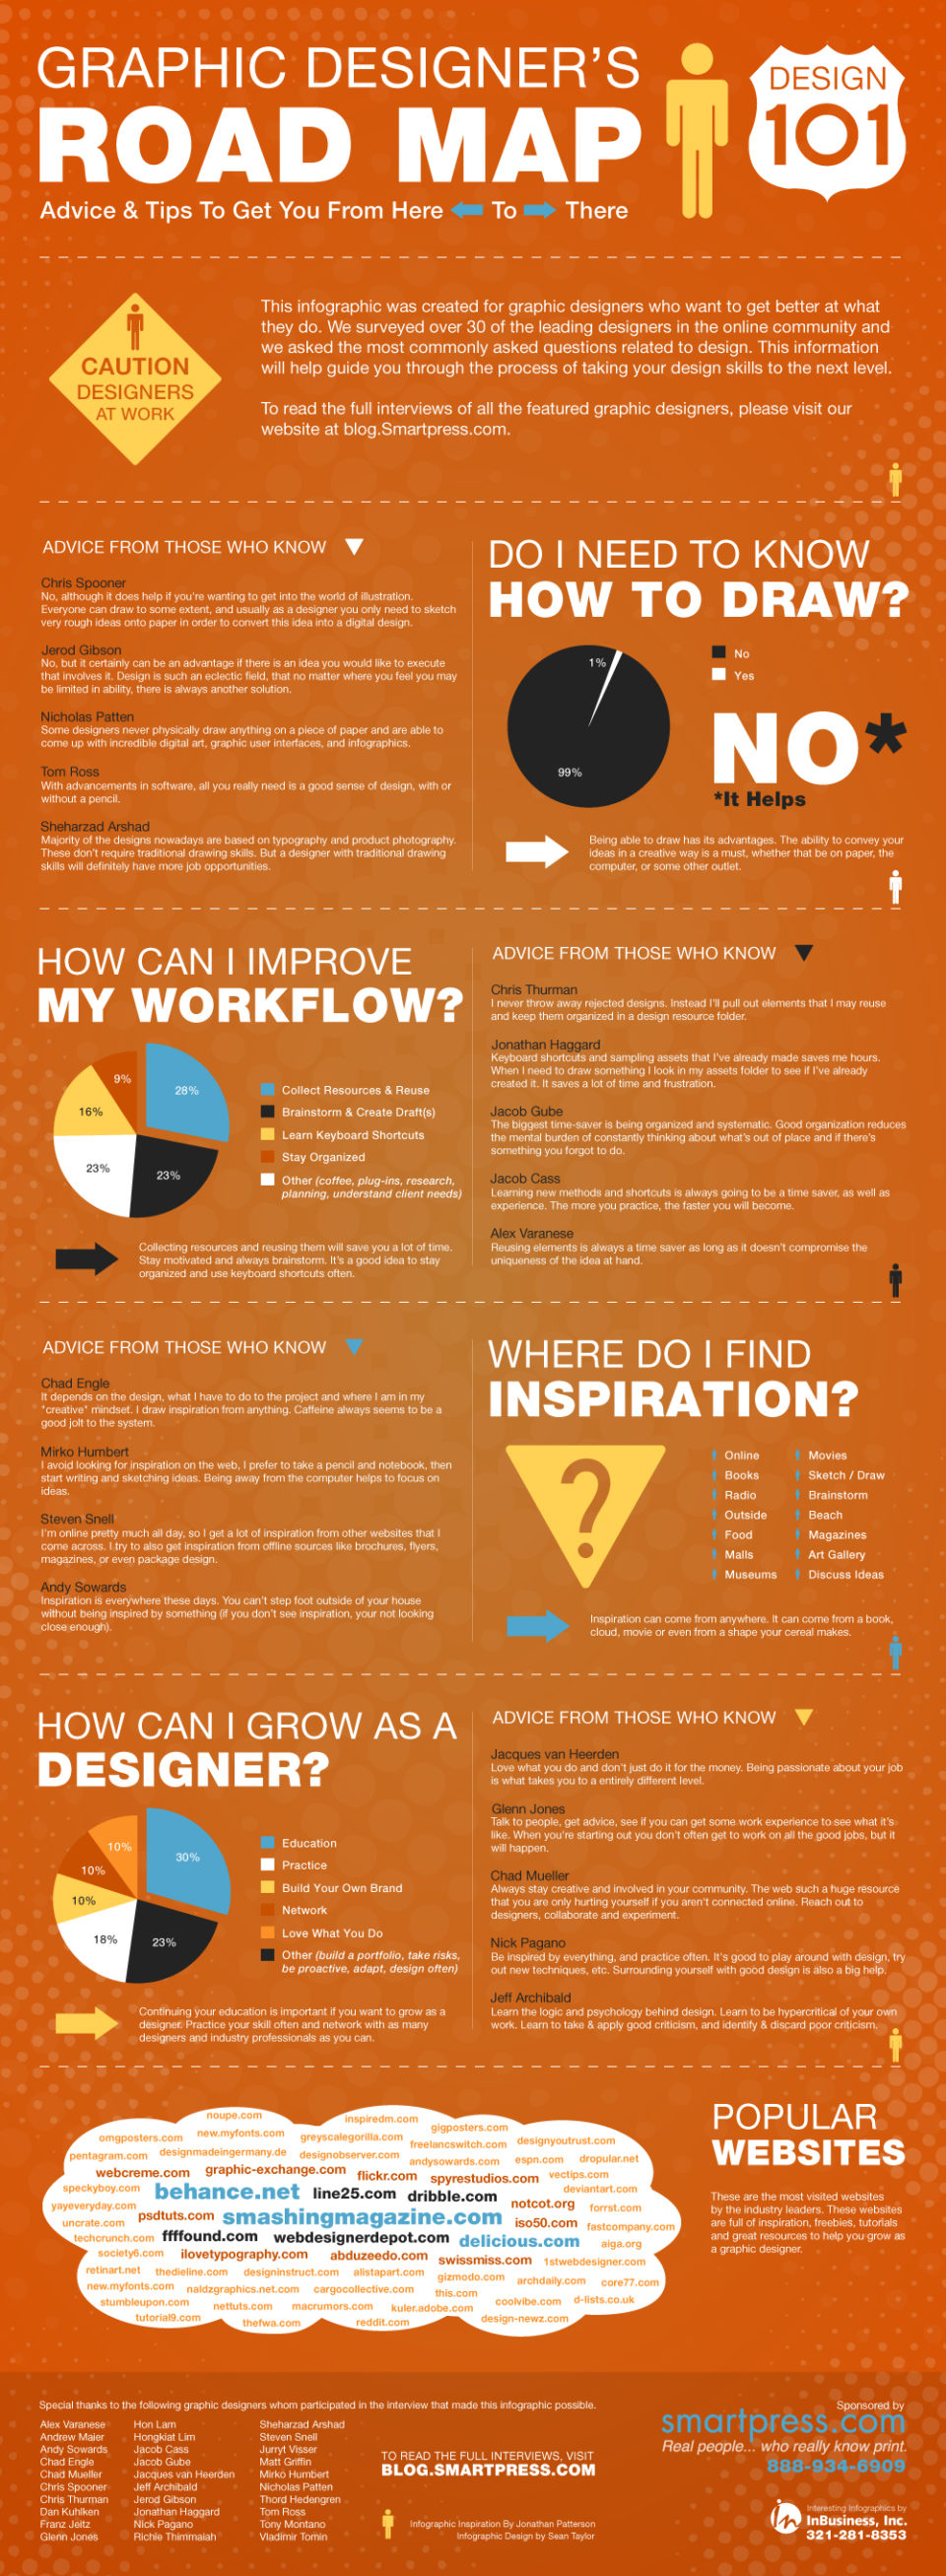 Infographic - Graphic Designer's Roadmap